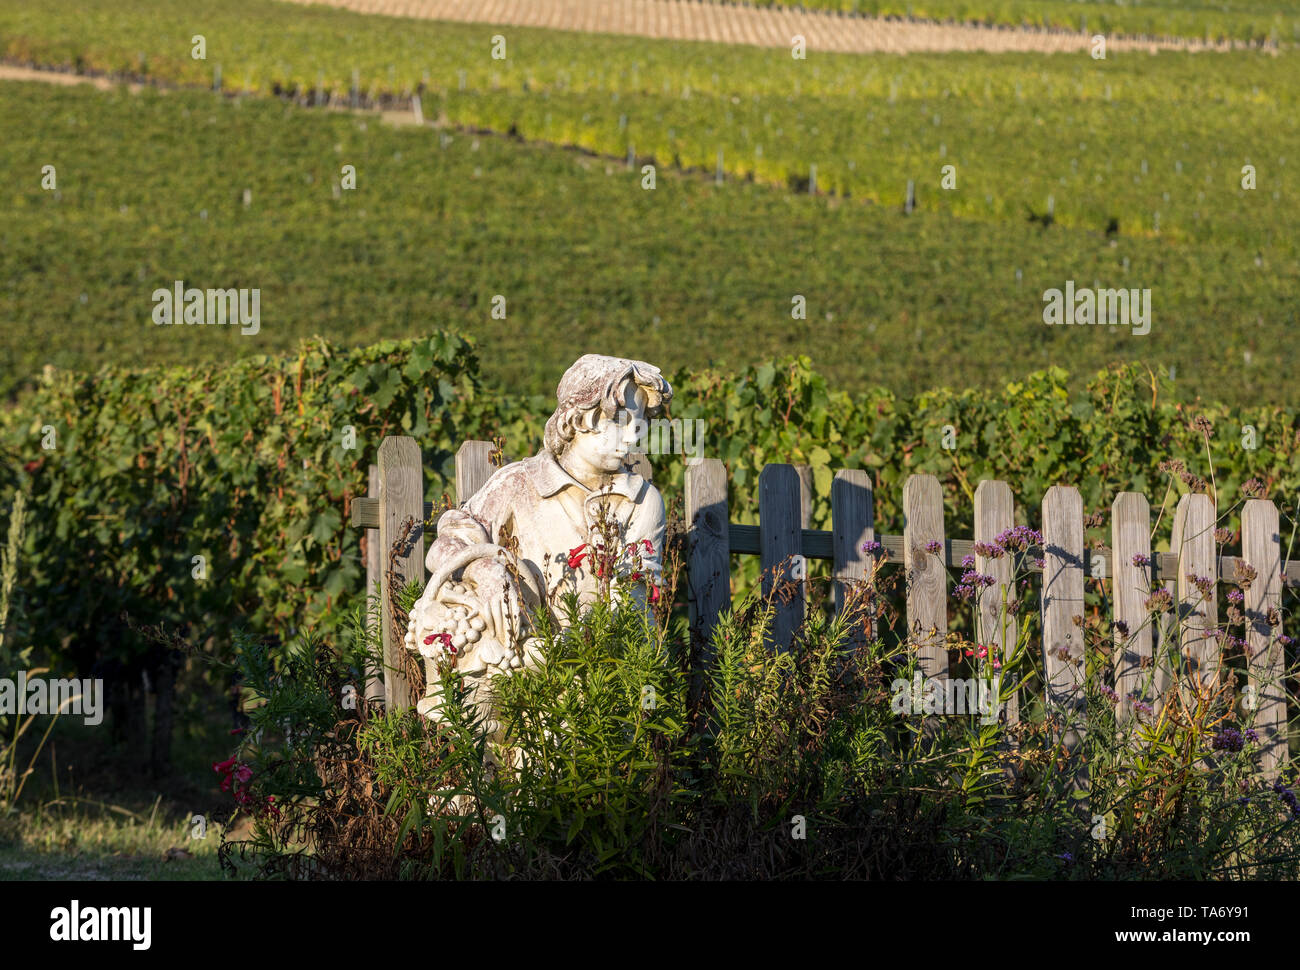 Saint Emilion, France - September 8, 2018: Statue of a boy holding a basket with grapes on the background of vineyards in the Saint Emilion region. Fr - Stock Image